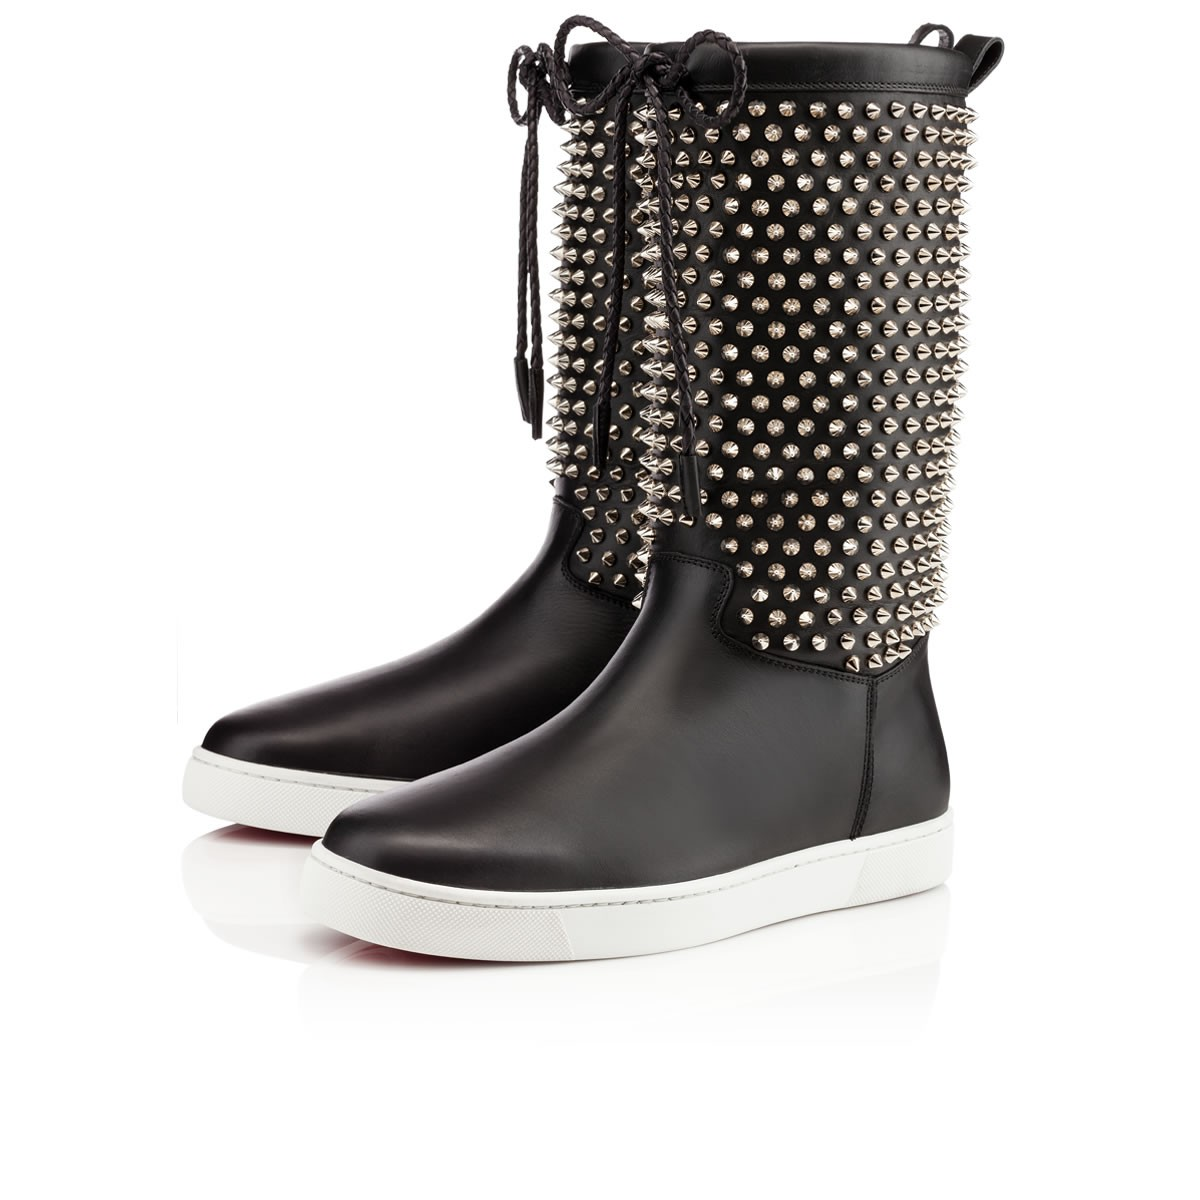 lyst christian louboutin naza spikes in black for men rh lyst com